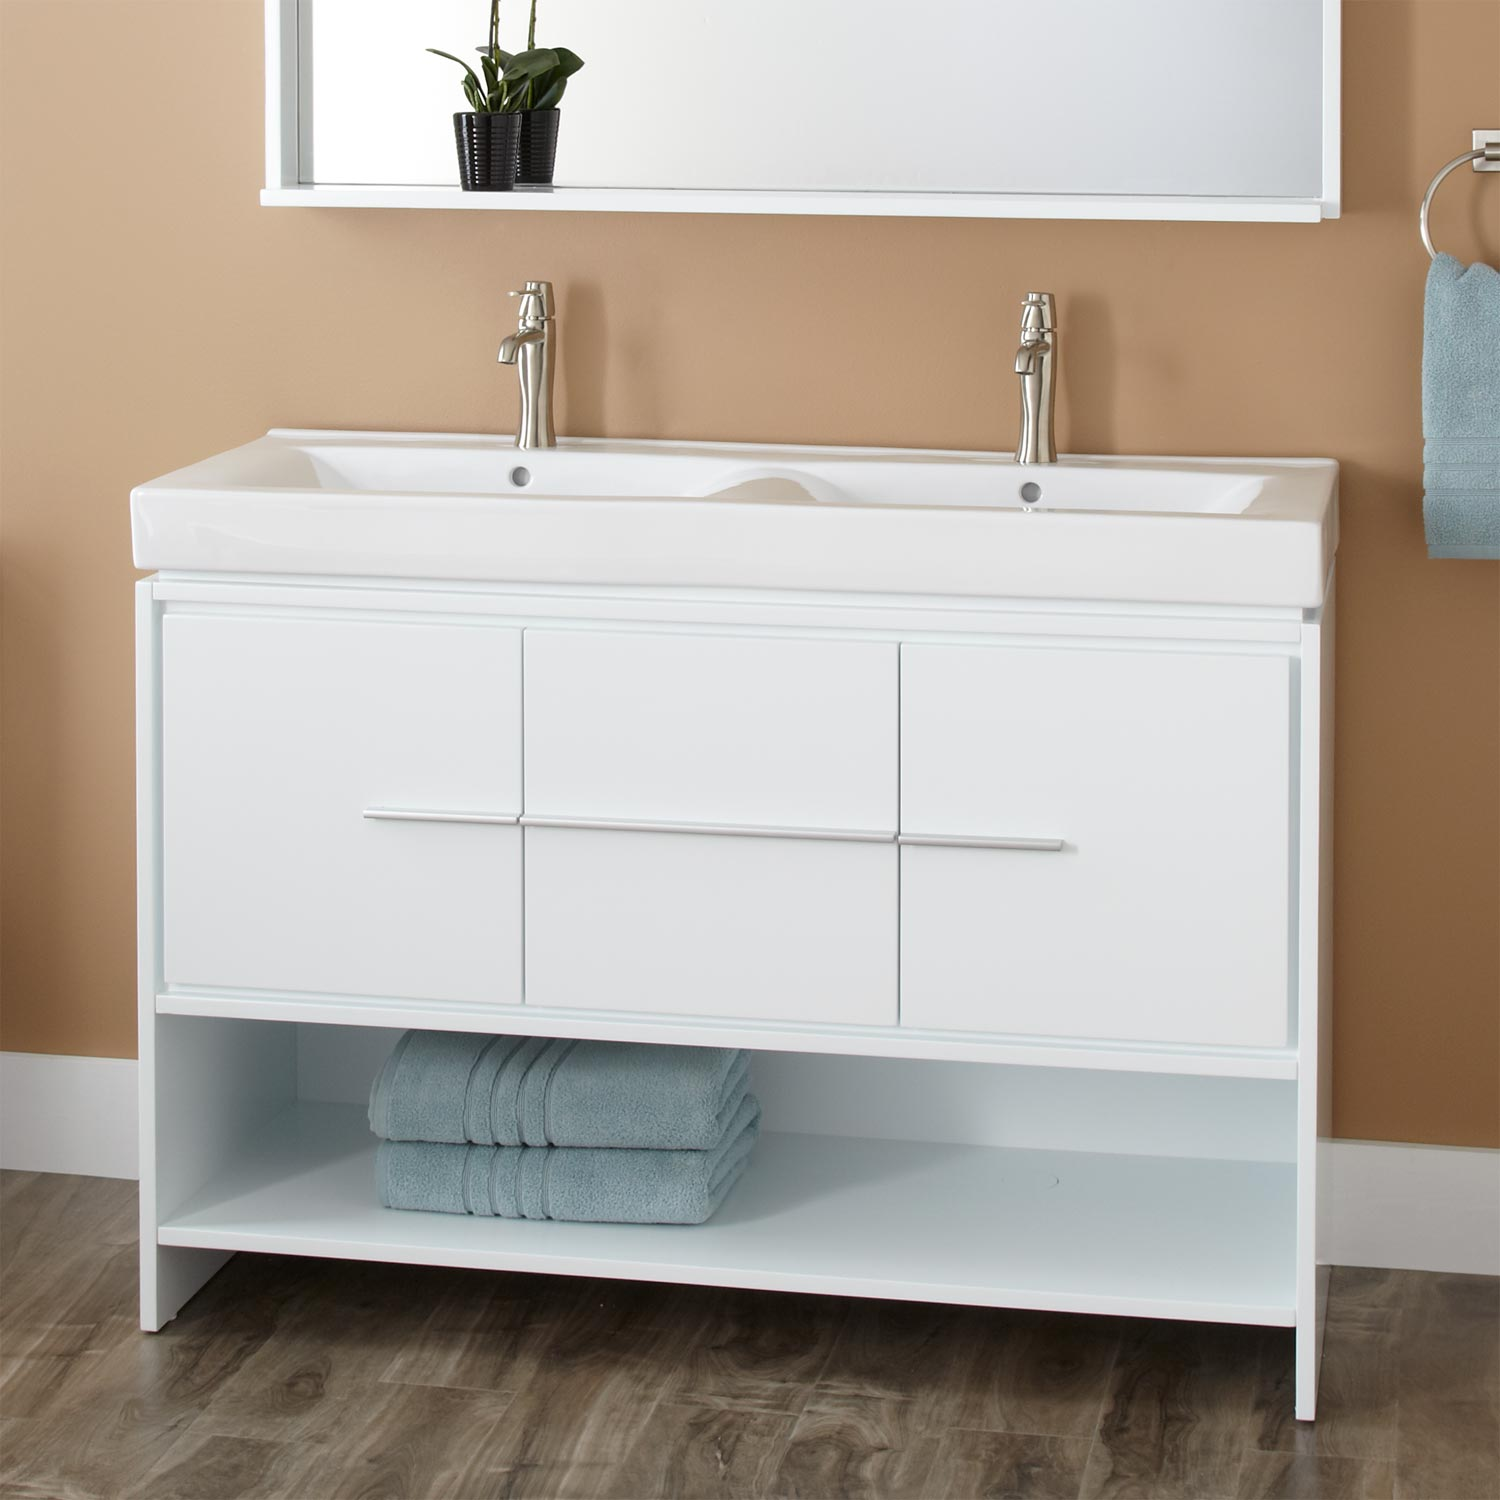 Bathroom sink with cabinet homesfeed for Bathroom sink and toilet cabinets